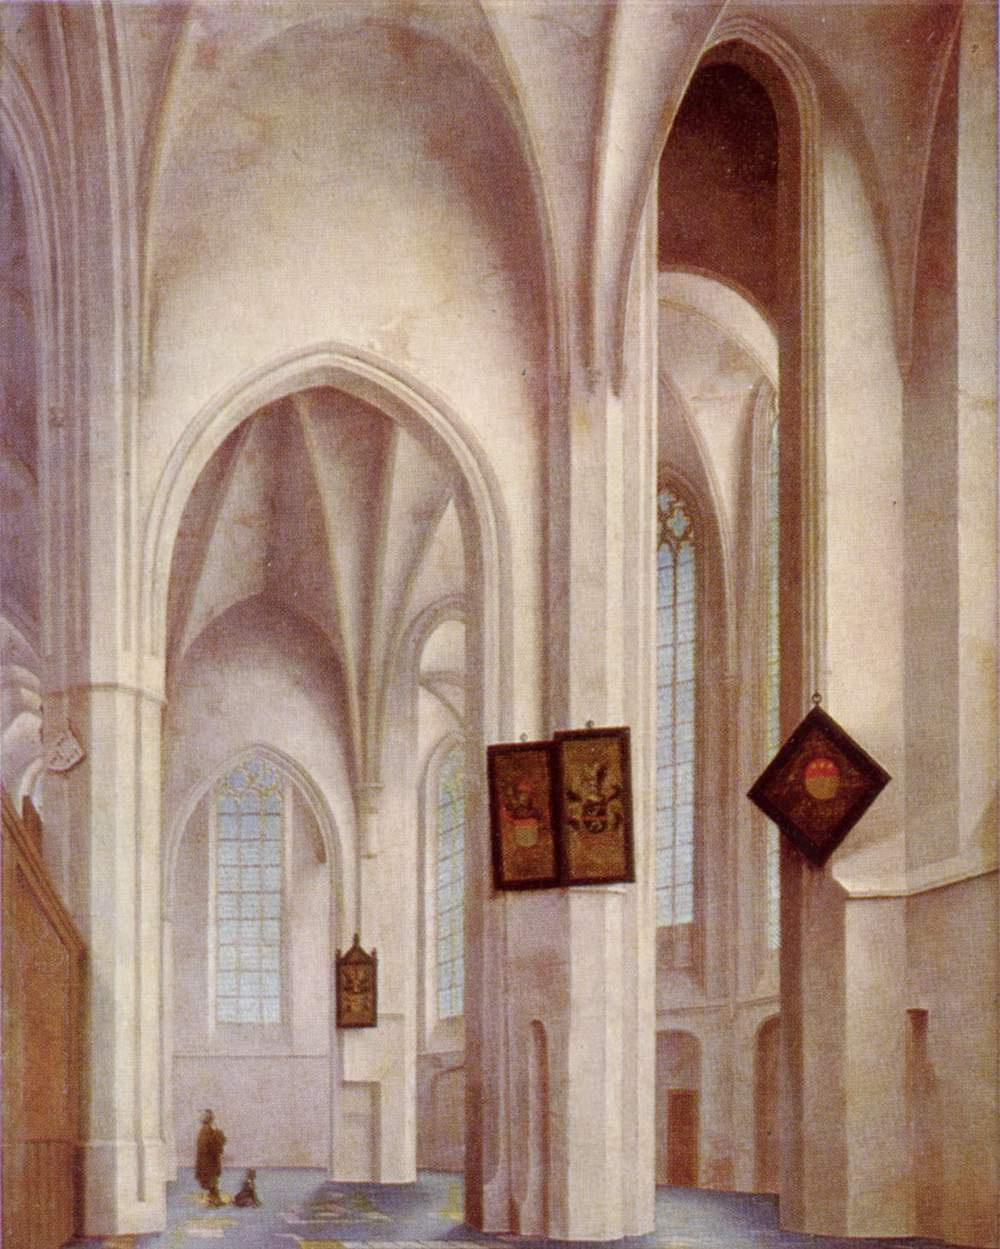 Peter Janson Sanremo. Interior view of St. James Church in Utrecht